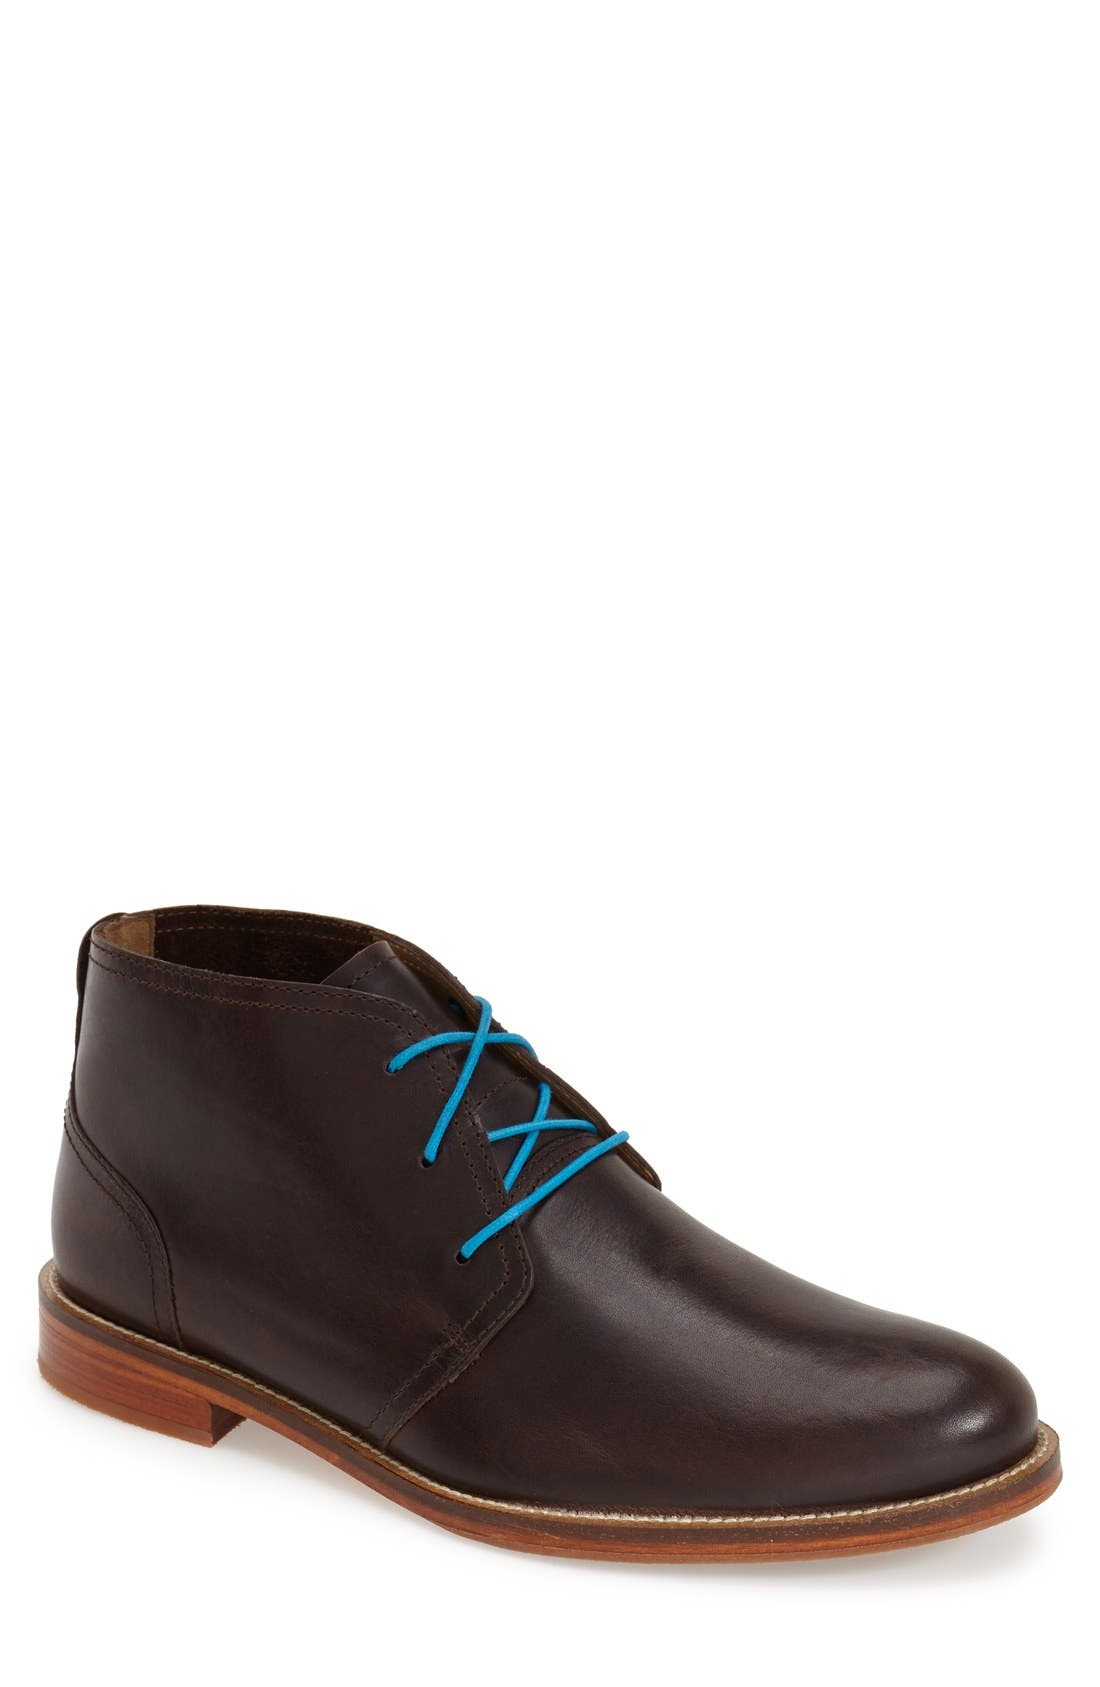 'Monarch Plus' Chukka Boot,                         Main,                         color, Dark Brown Leather